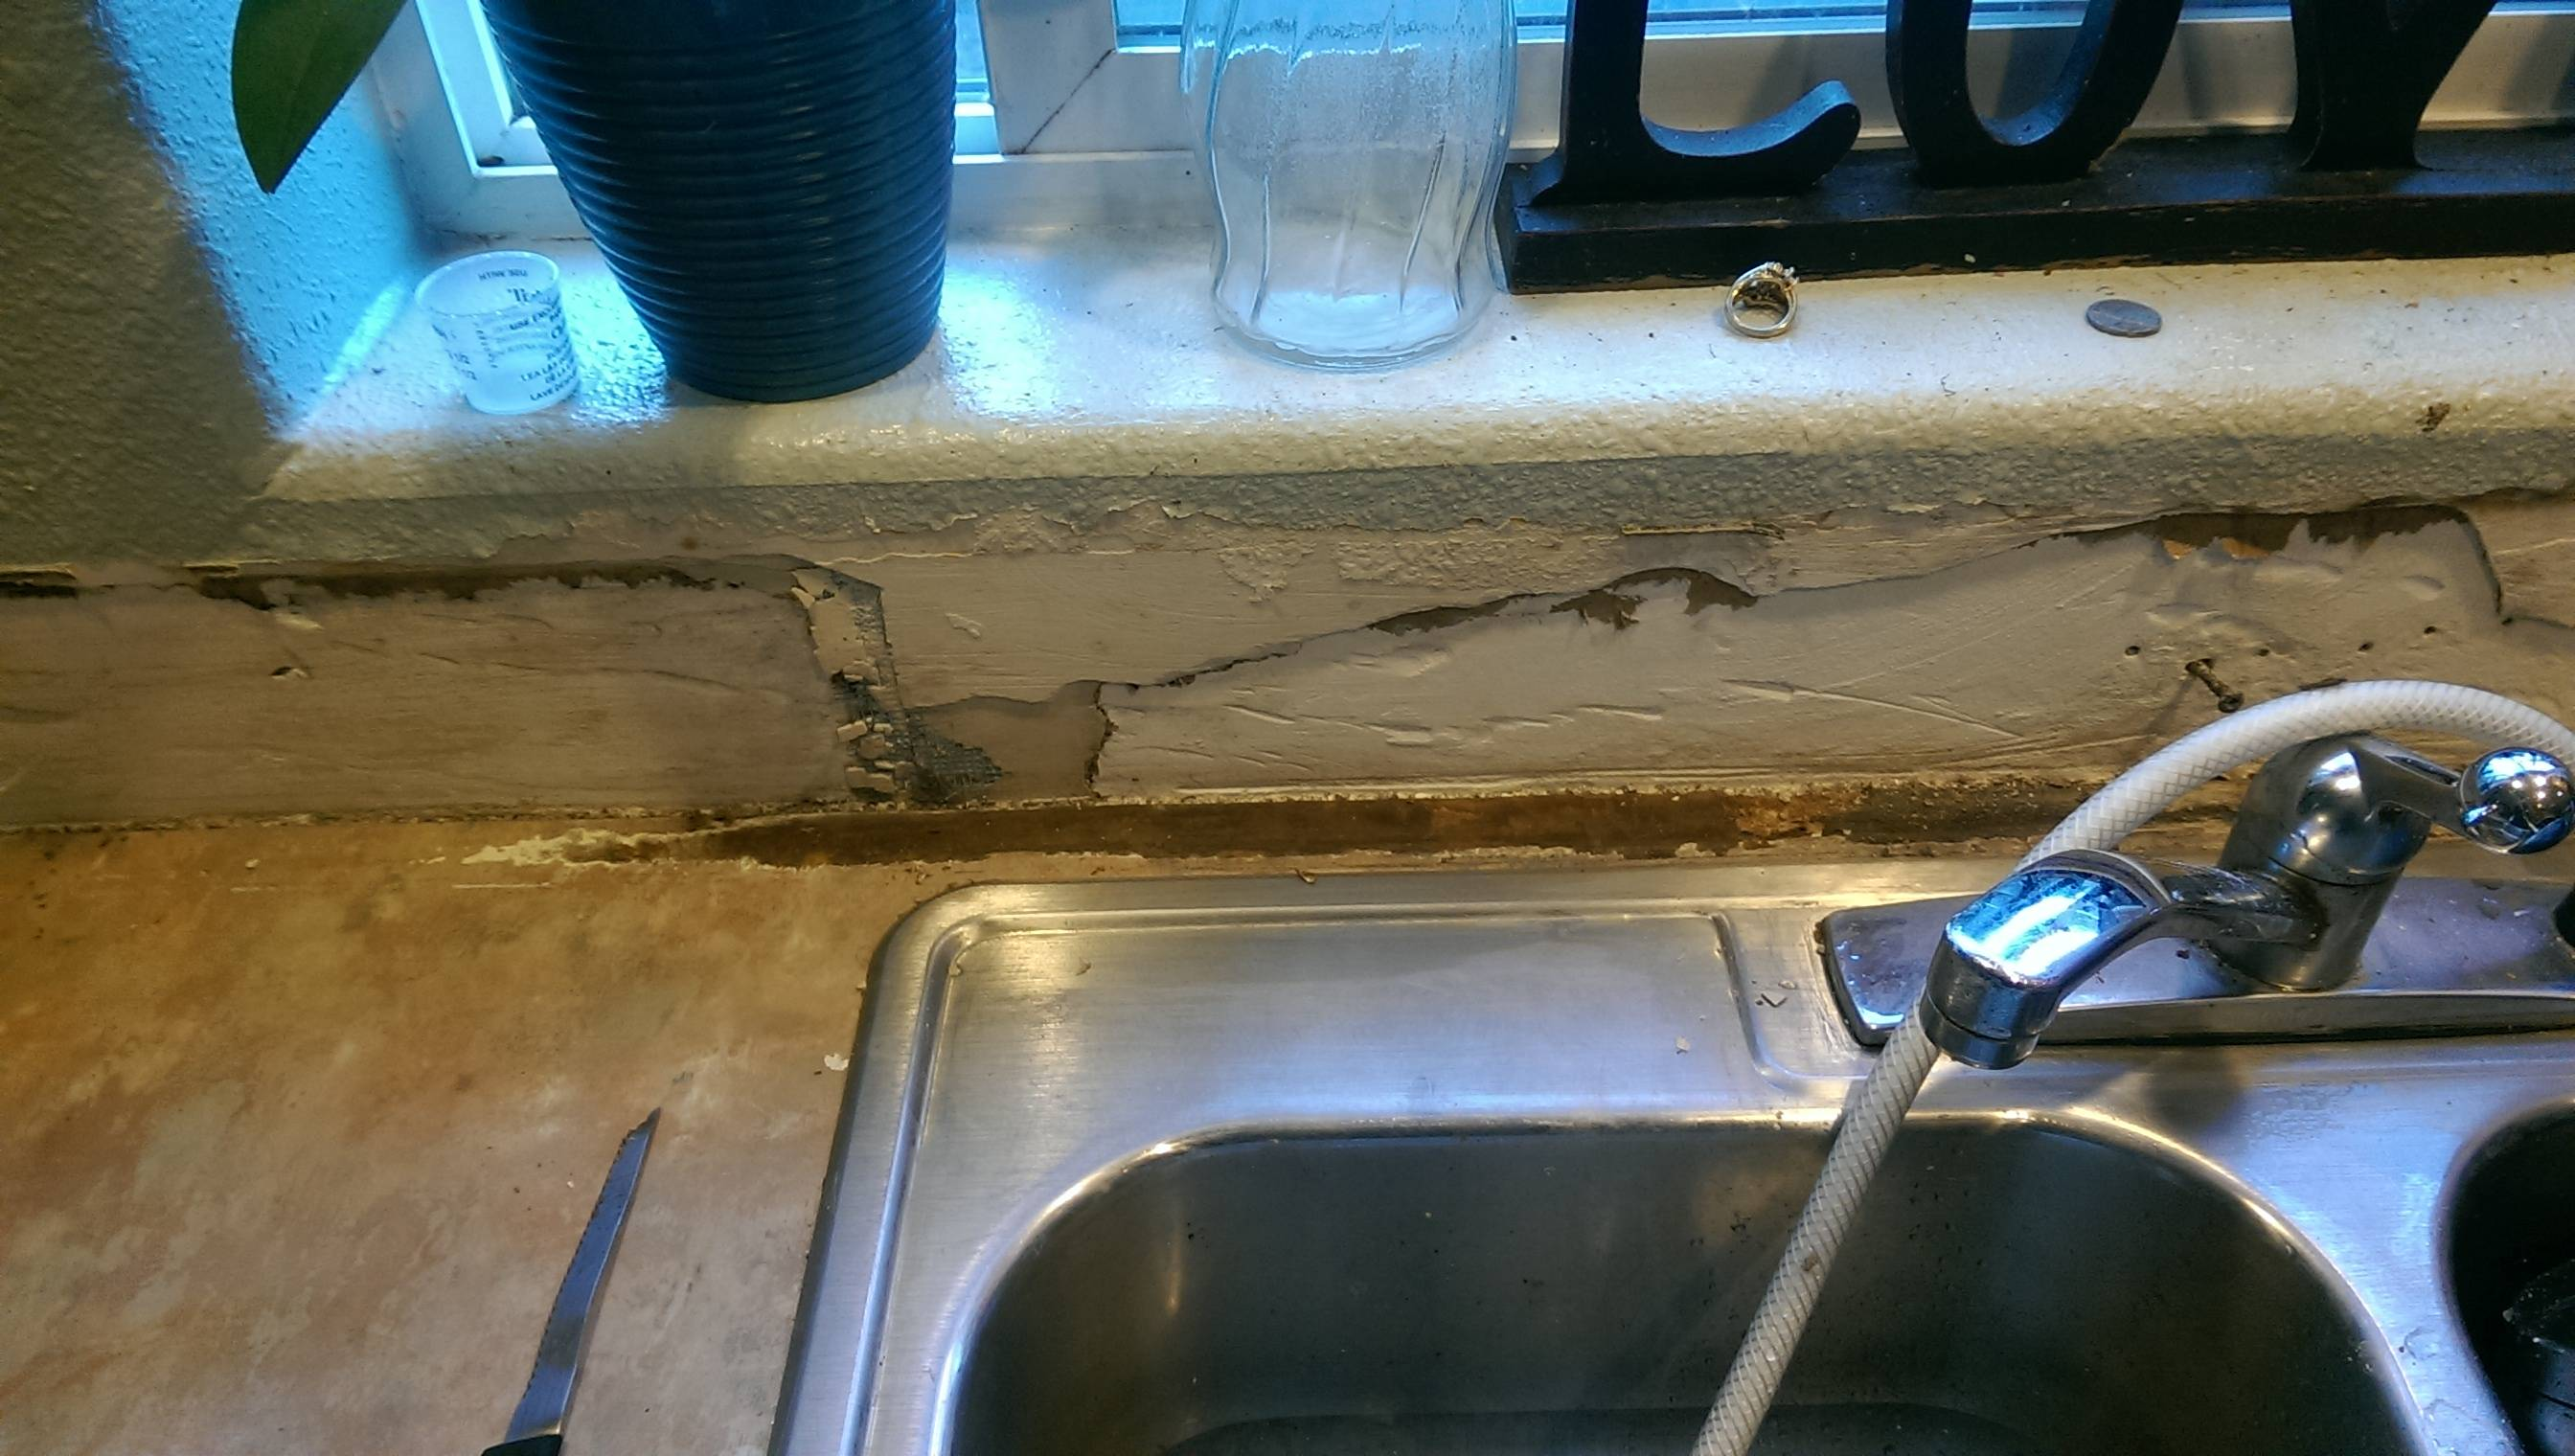 kitchens to go kitchen sink cabinet size drywall - how can i prevent mold on the wall/particle ...